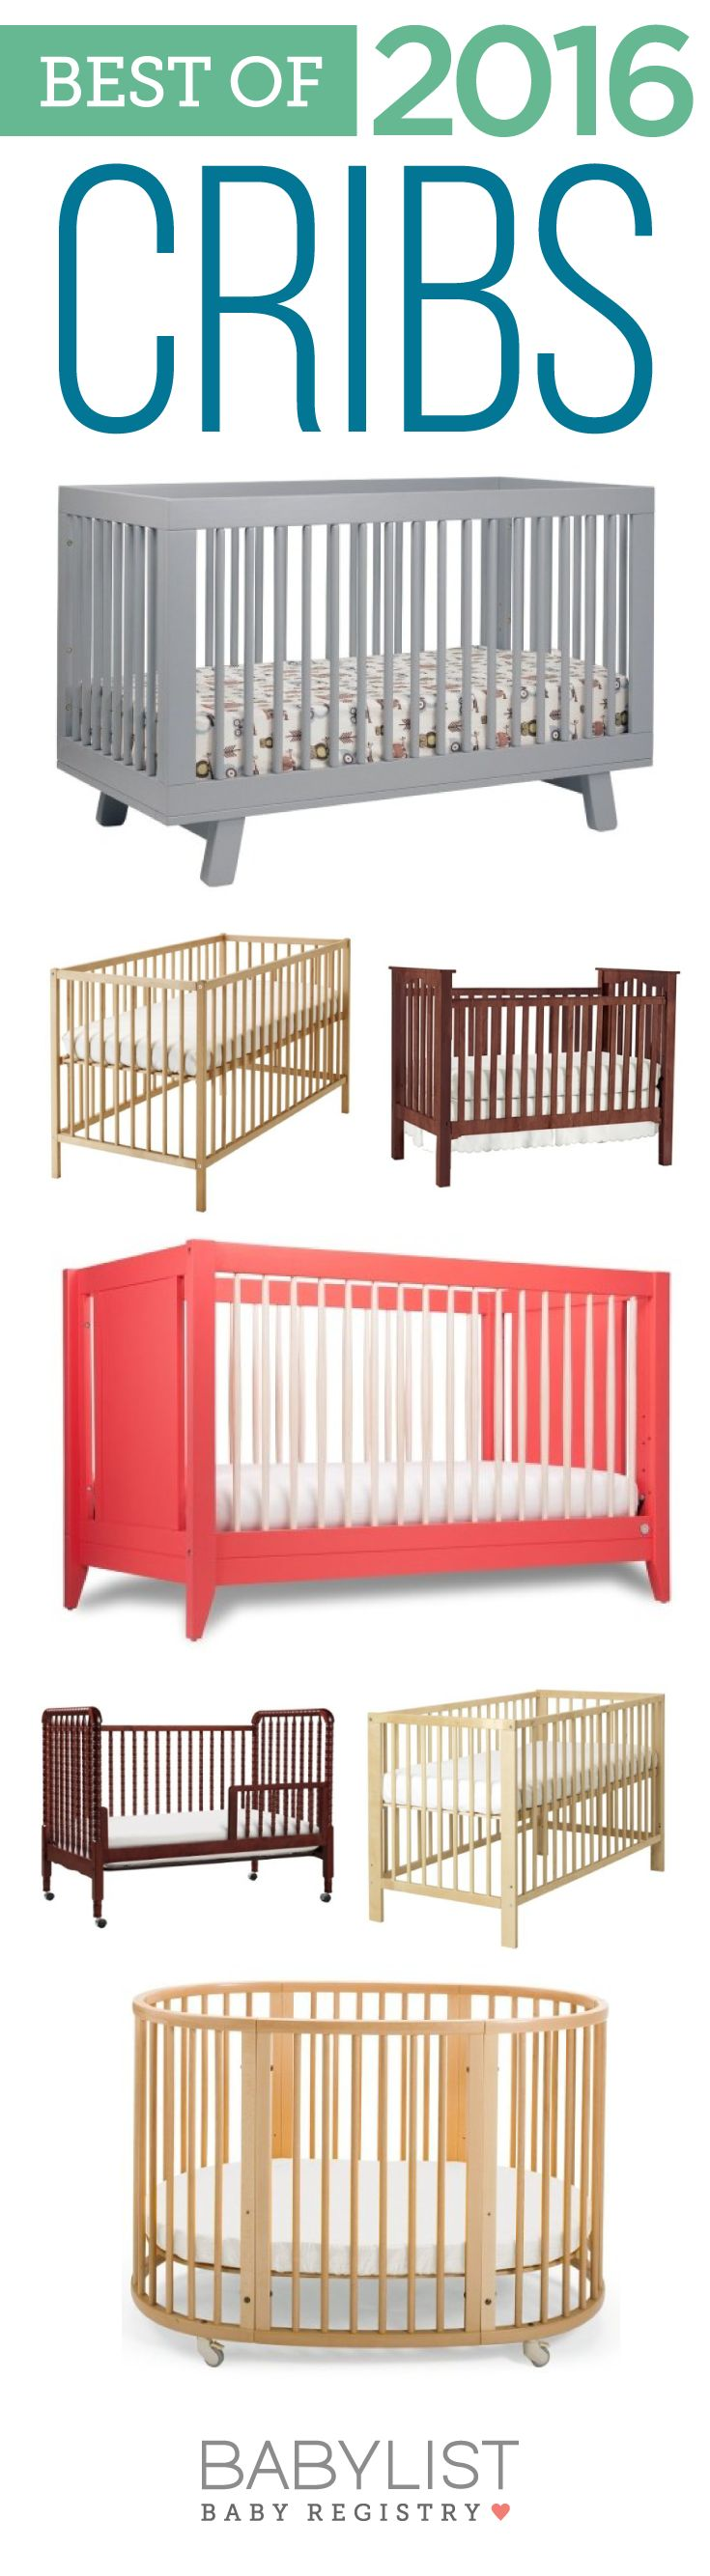 Need some crib advice to help you pick out the best one? Here are the 7 best cribs of 2016 - based on our own research + input from thousands of parents. There's no one must-have crib. Every family is different. Use this guide to help you figure out the best crib for your family's needs and priorities.